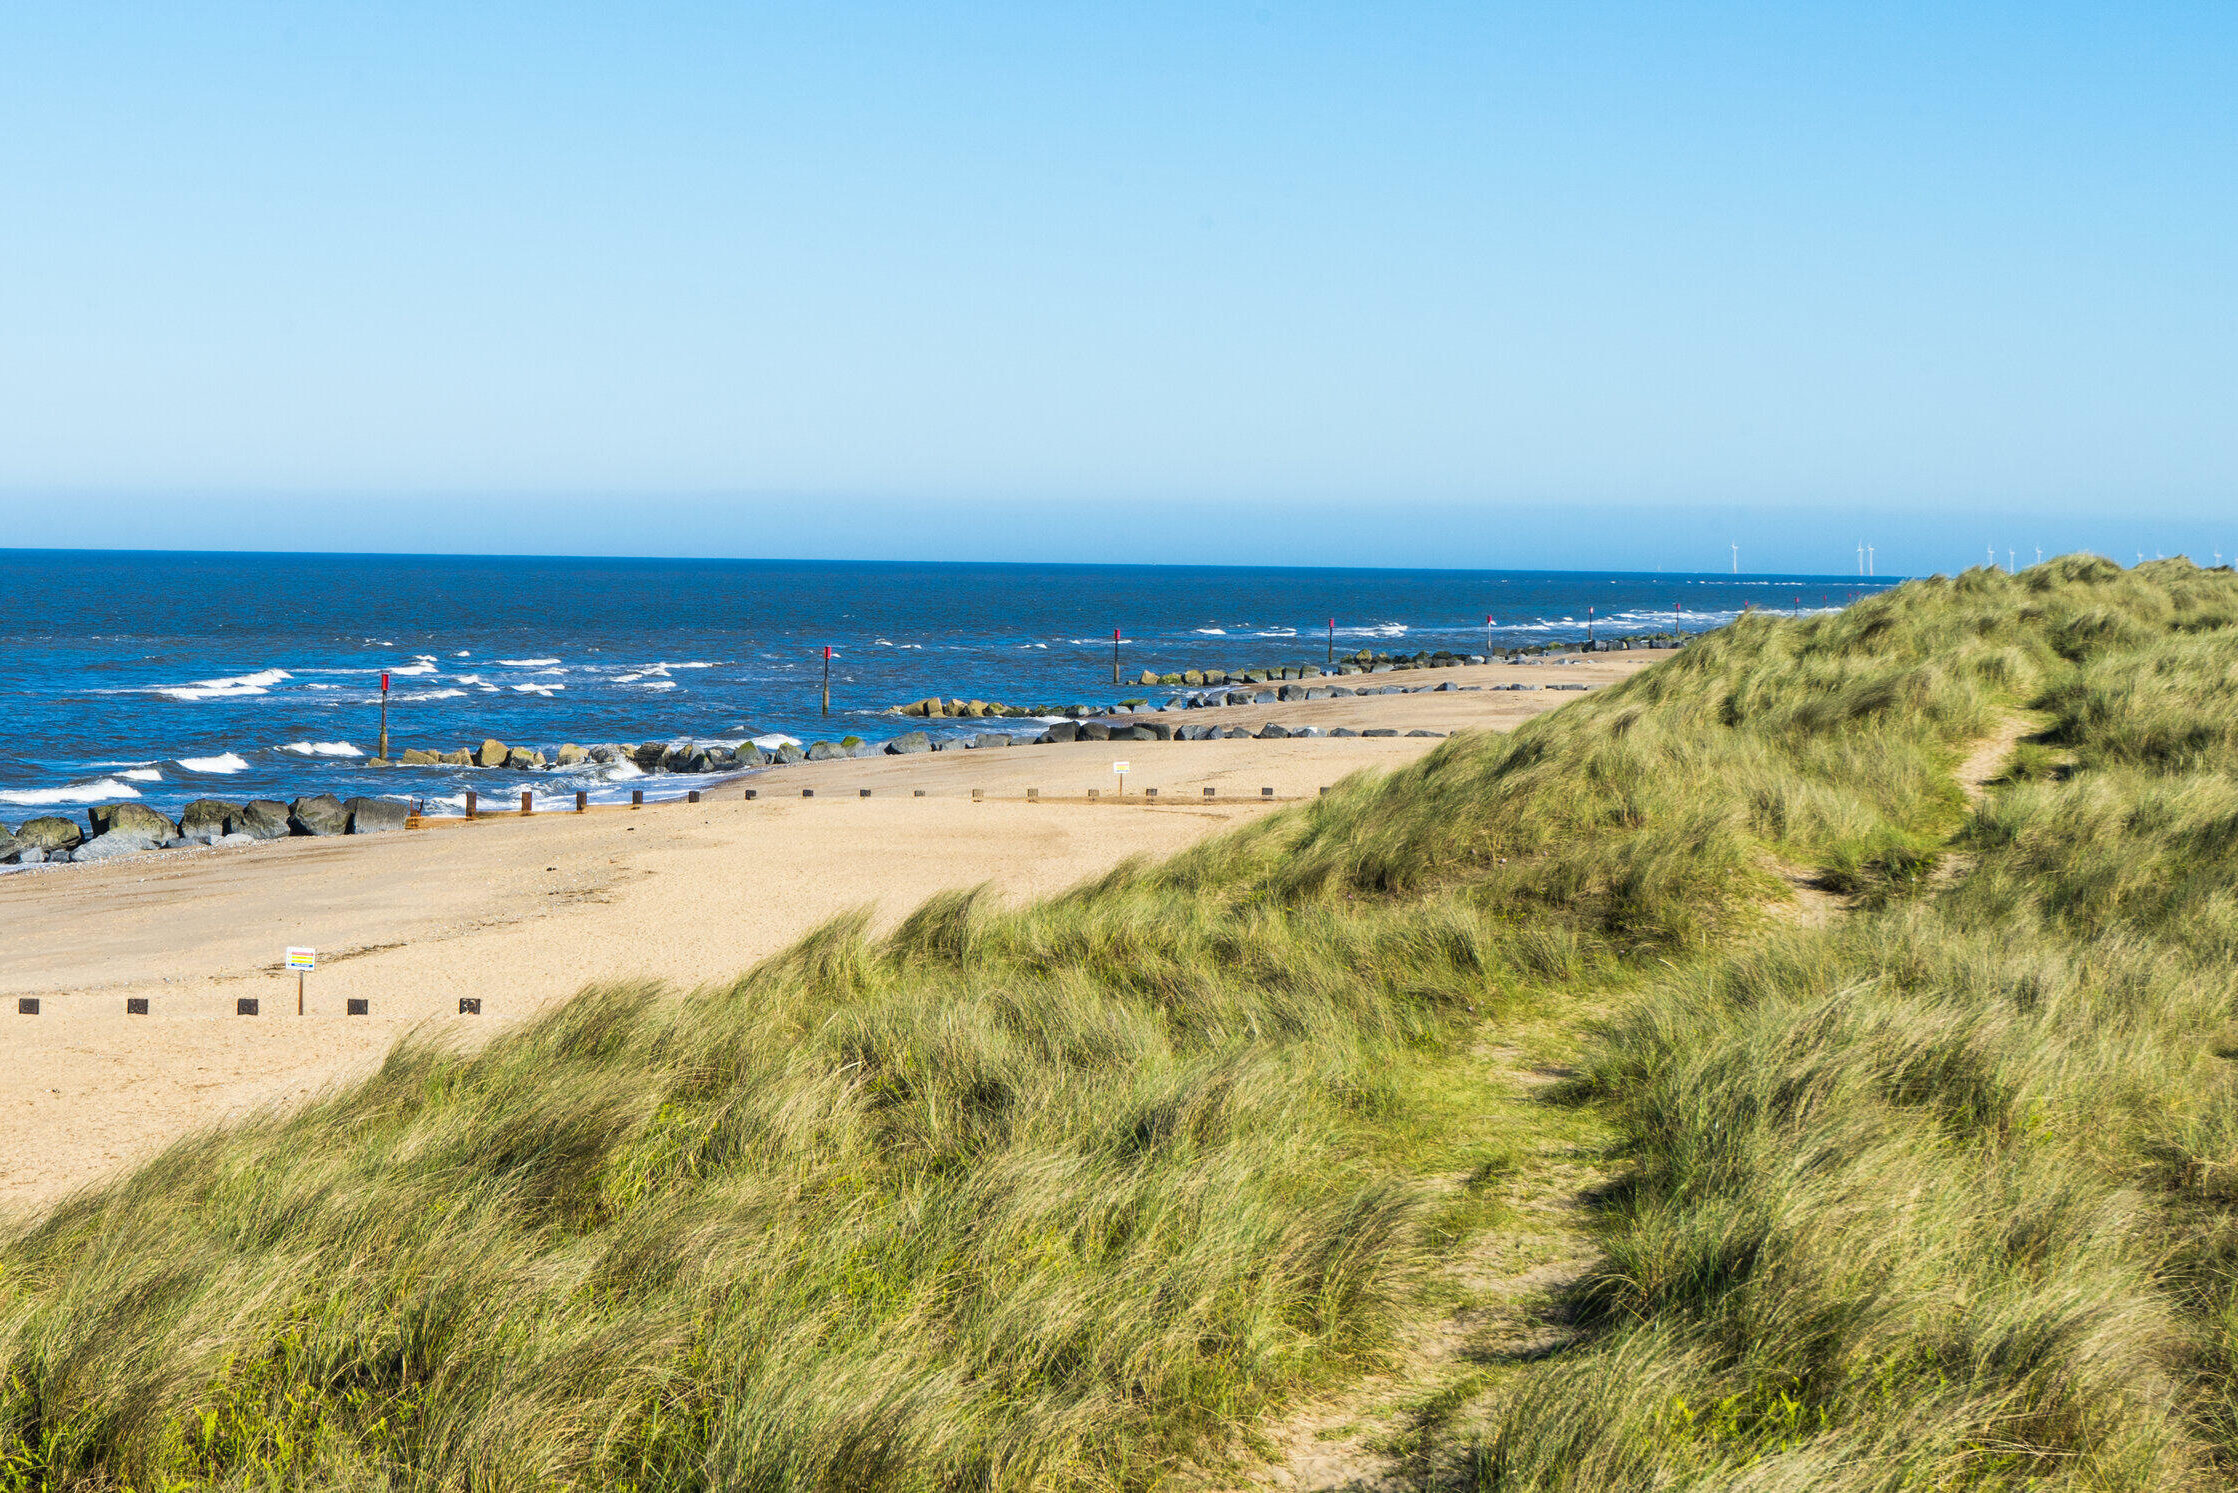 A view over the sand dunes covered in grass, and the ocean and beach in the back of the image in Norfolk, one of the best summer fishing destinations